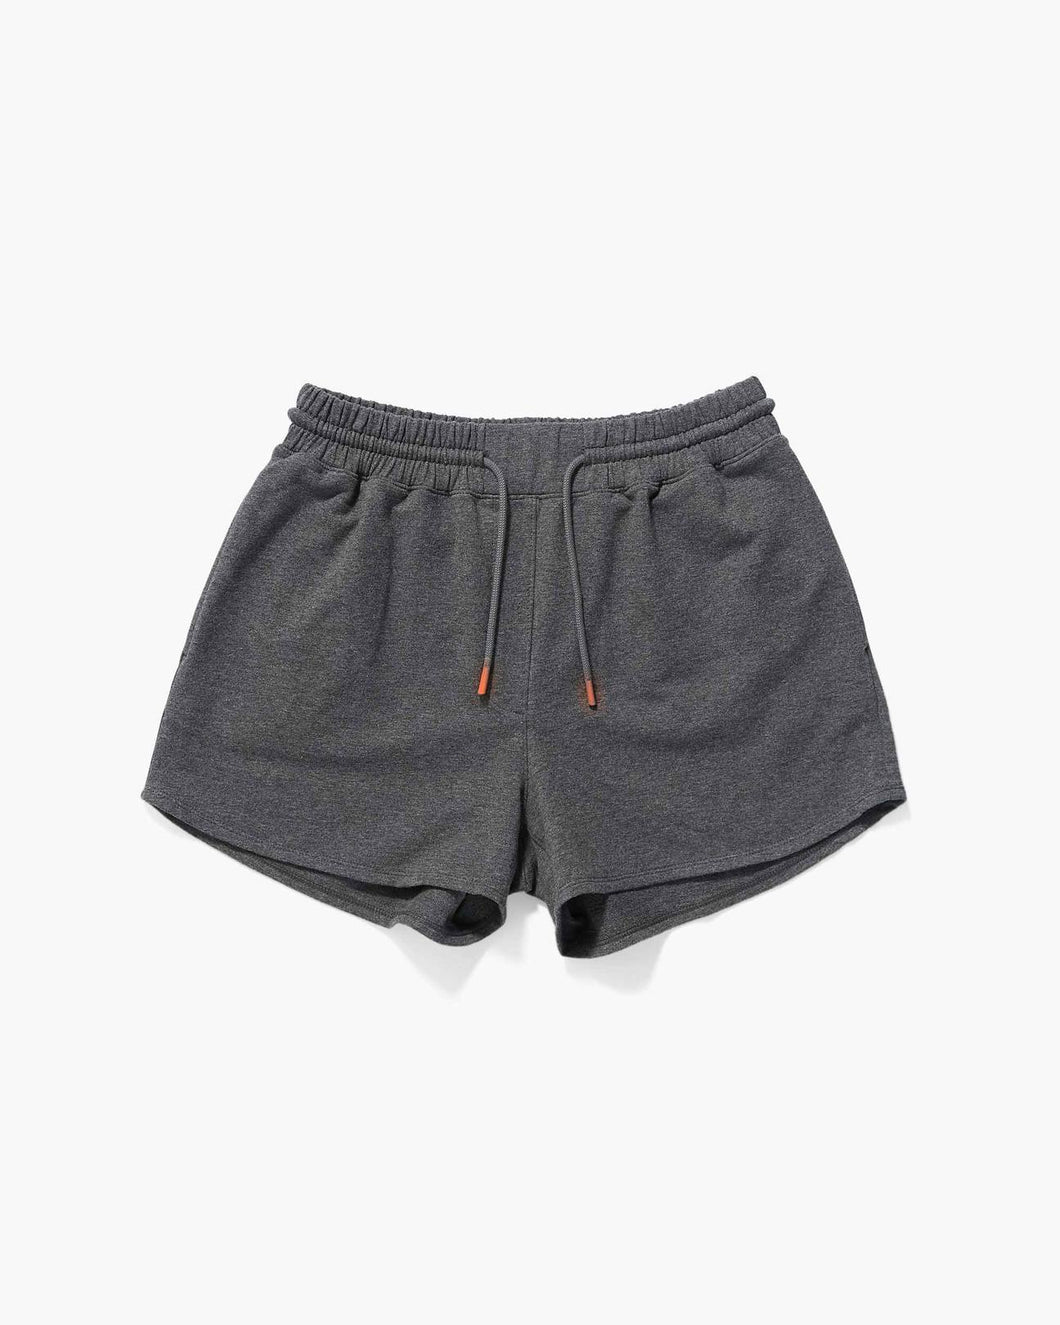 TERRY SWEATSHORTS